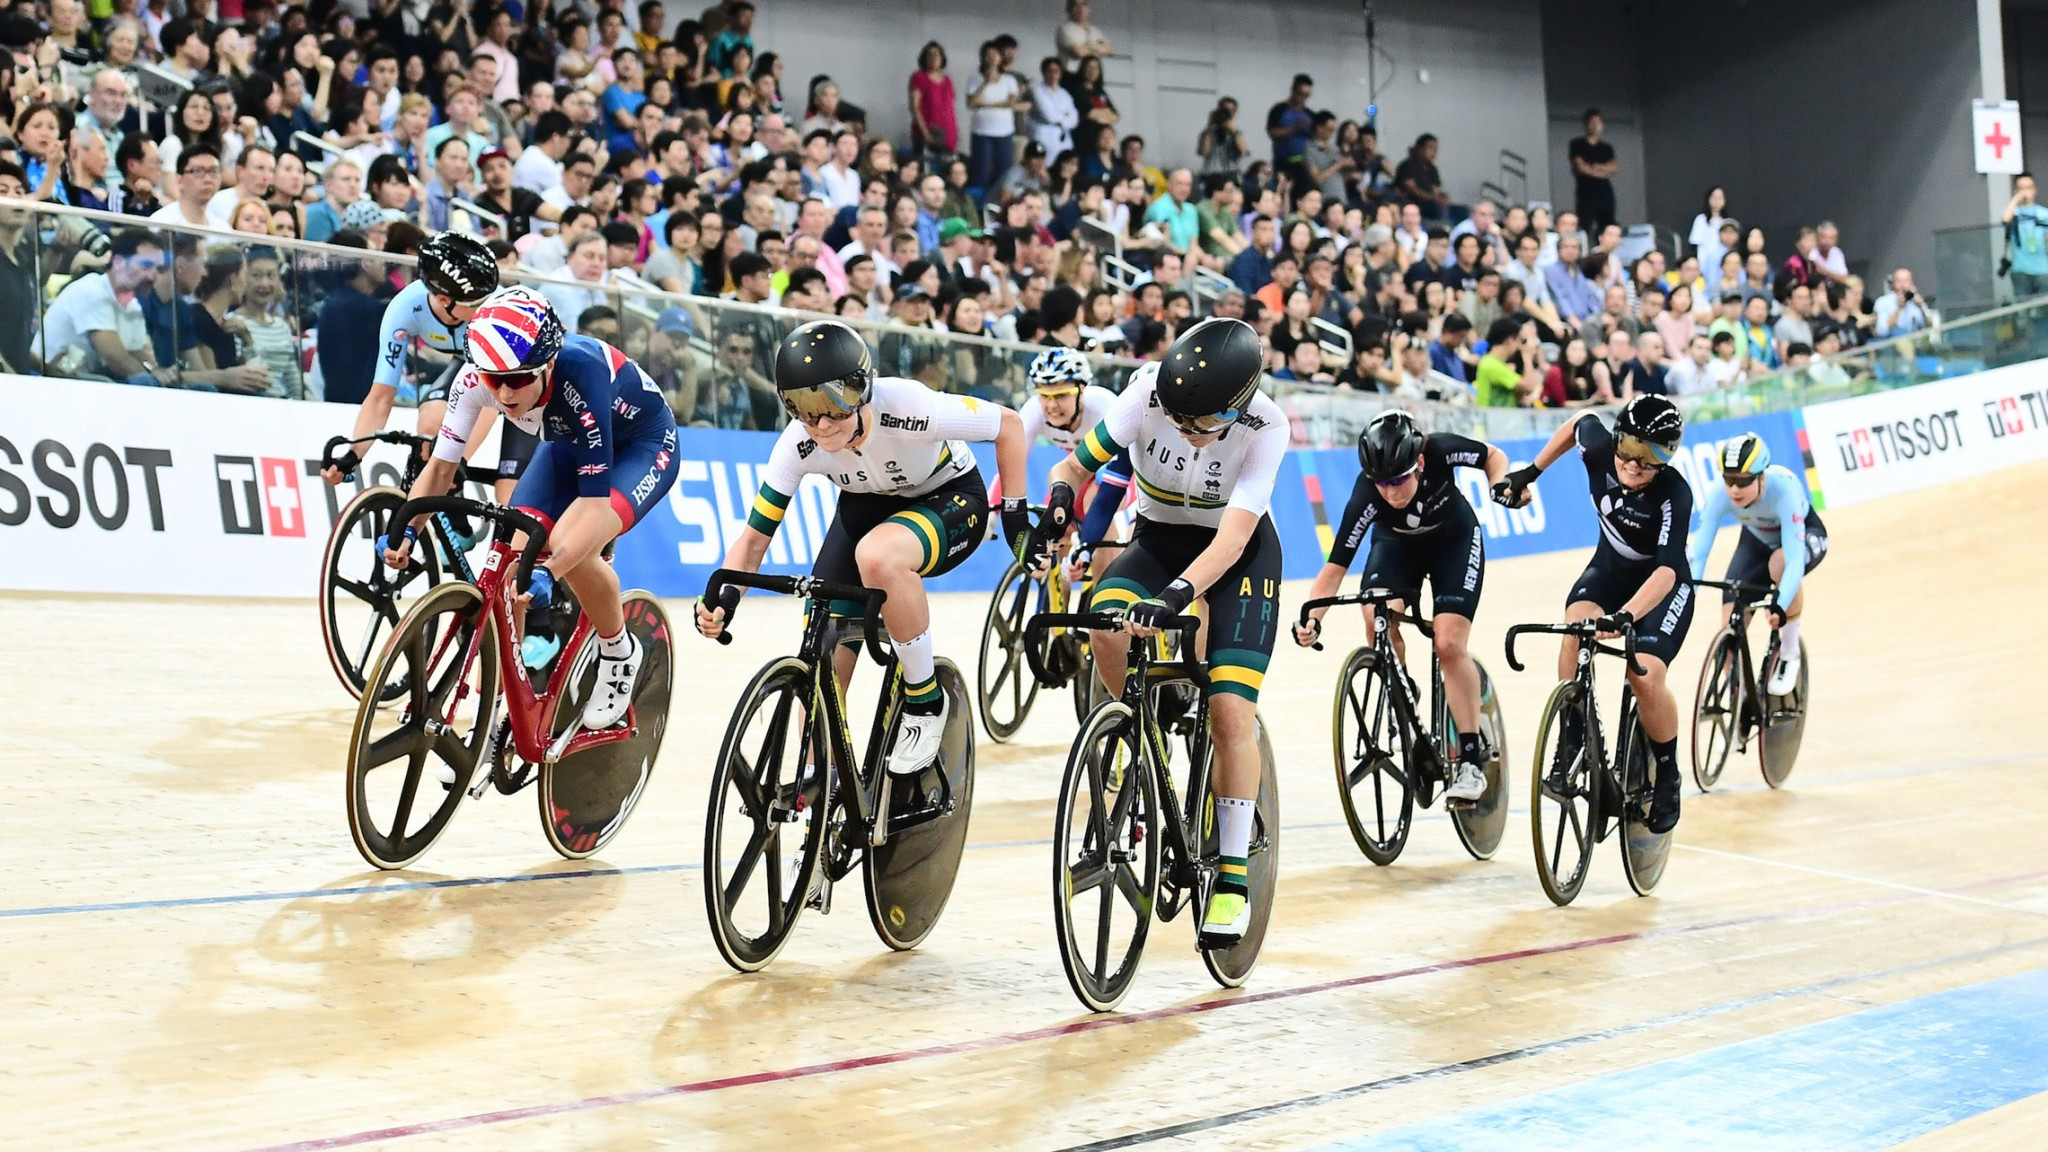 UCI Track Cycling World Cup season set to begin in Pruszków